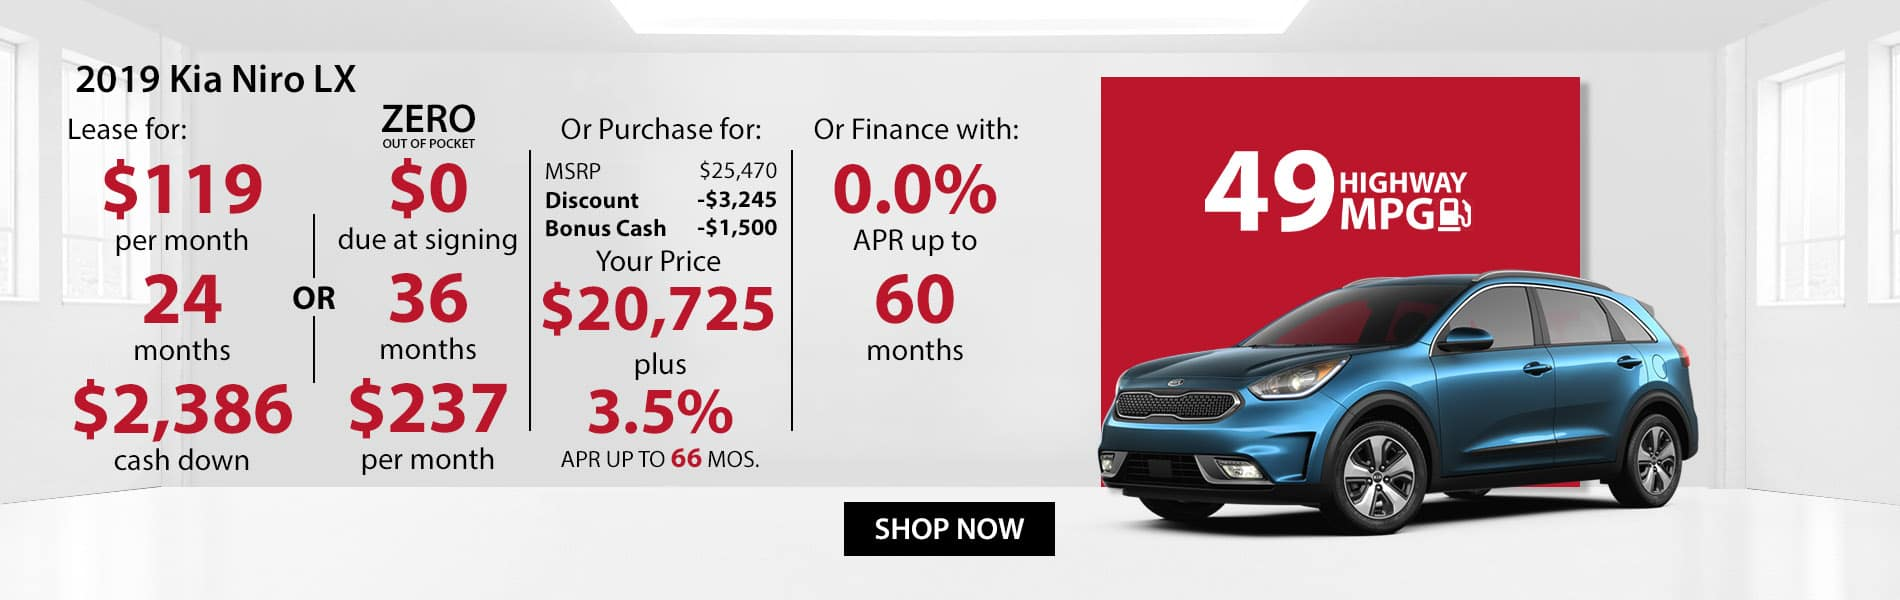 Special offer on 2019 Kia Niro LX! Lease for $119 with $2,386 down or Purchase for $20,725 with 3.5% APR or get 0% APR for 60 months.